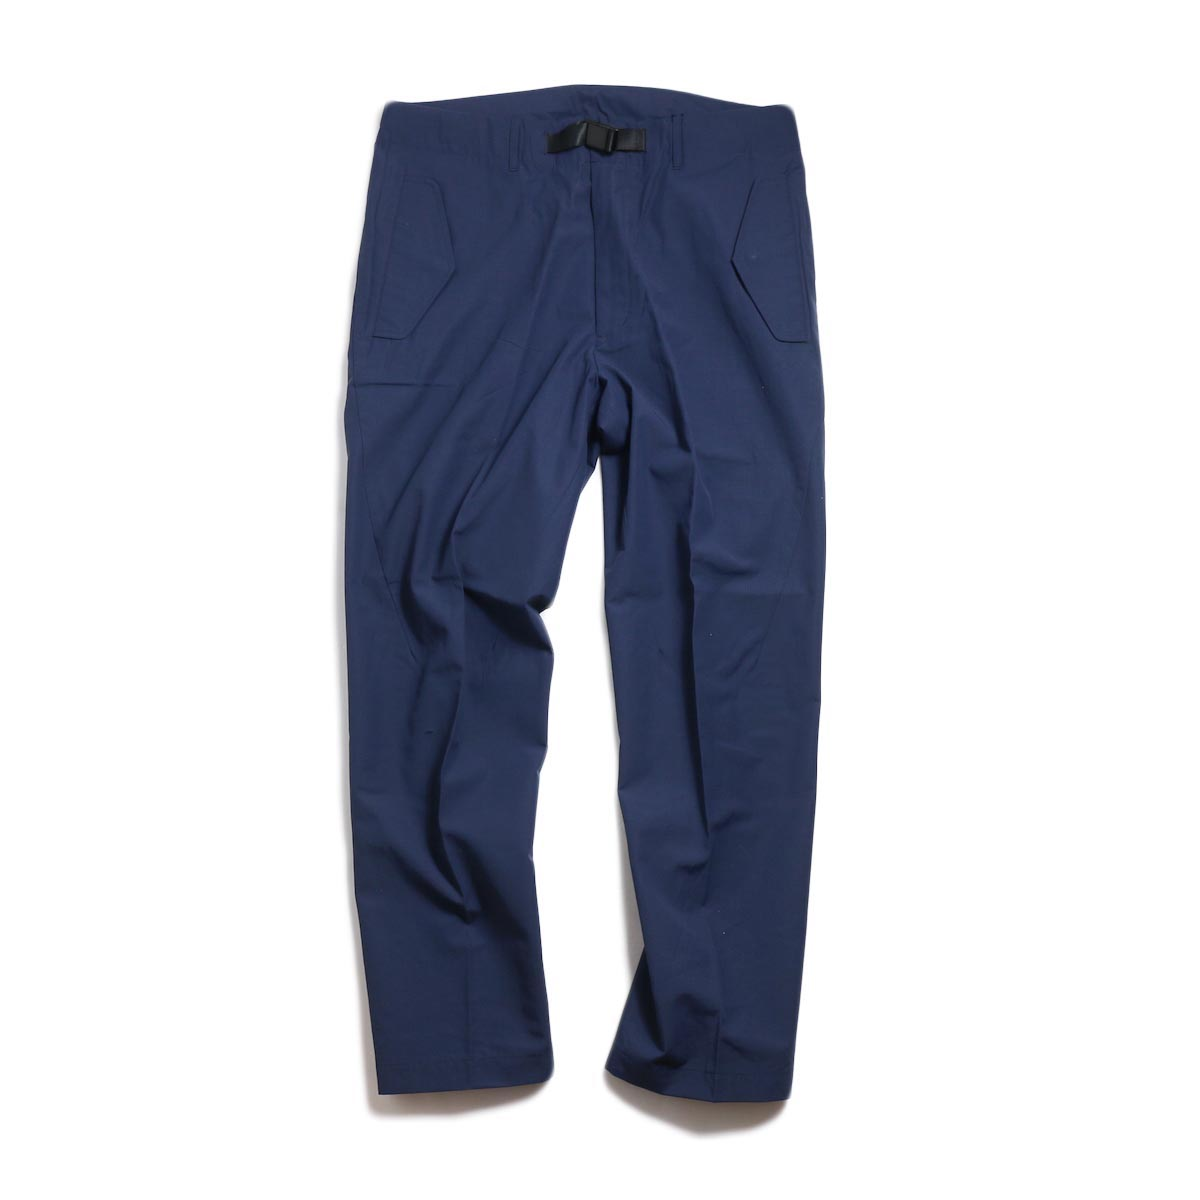 DESCENTE ddd / UNIFIT PANTS -NAVY 正面